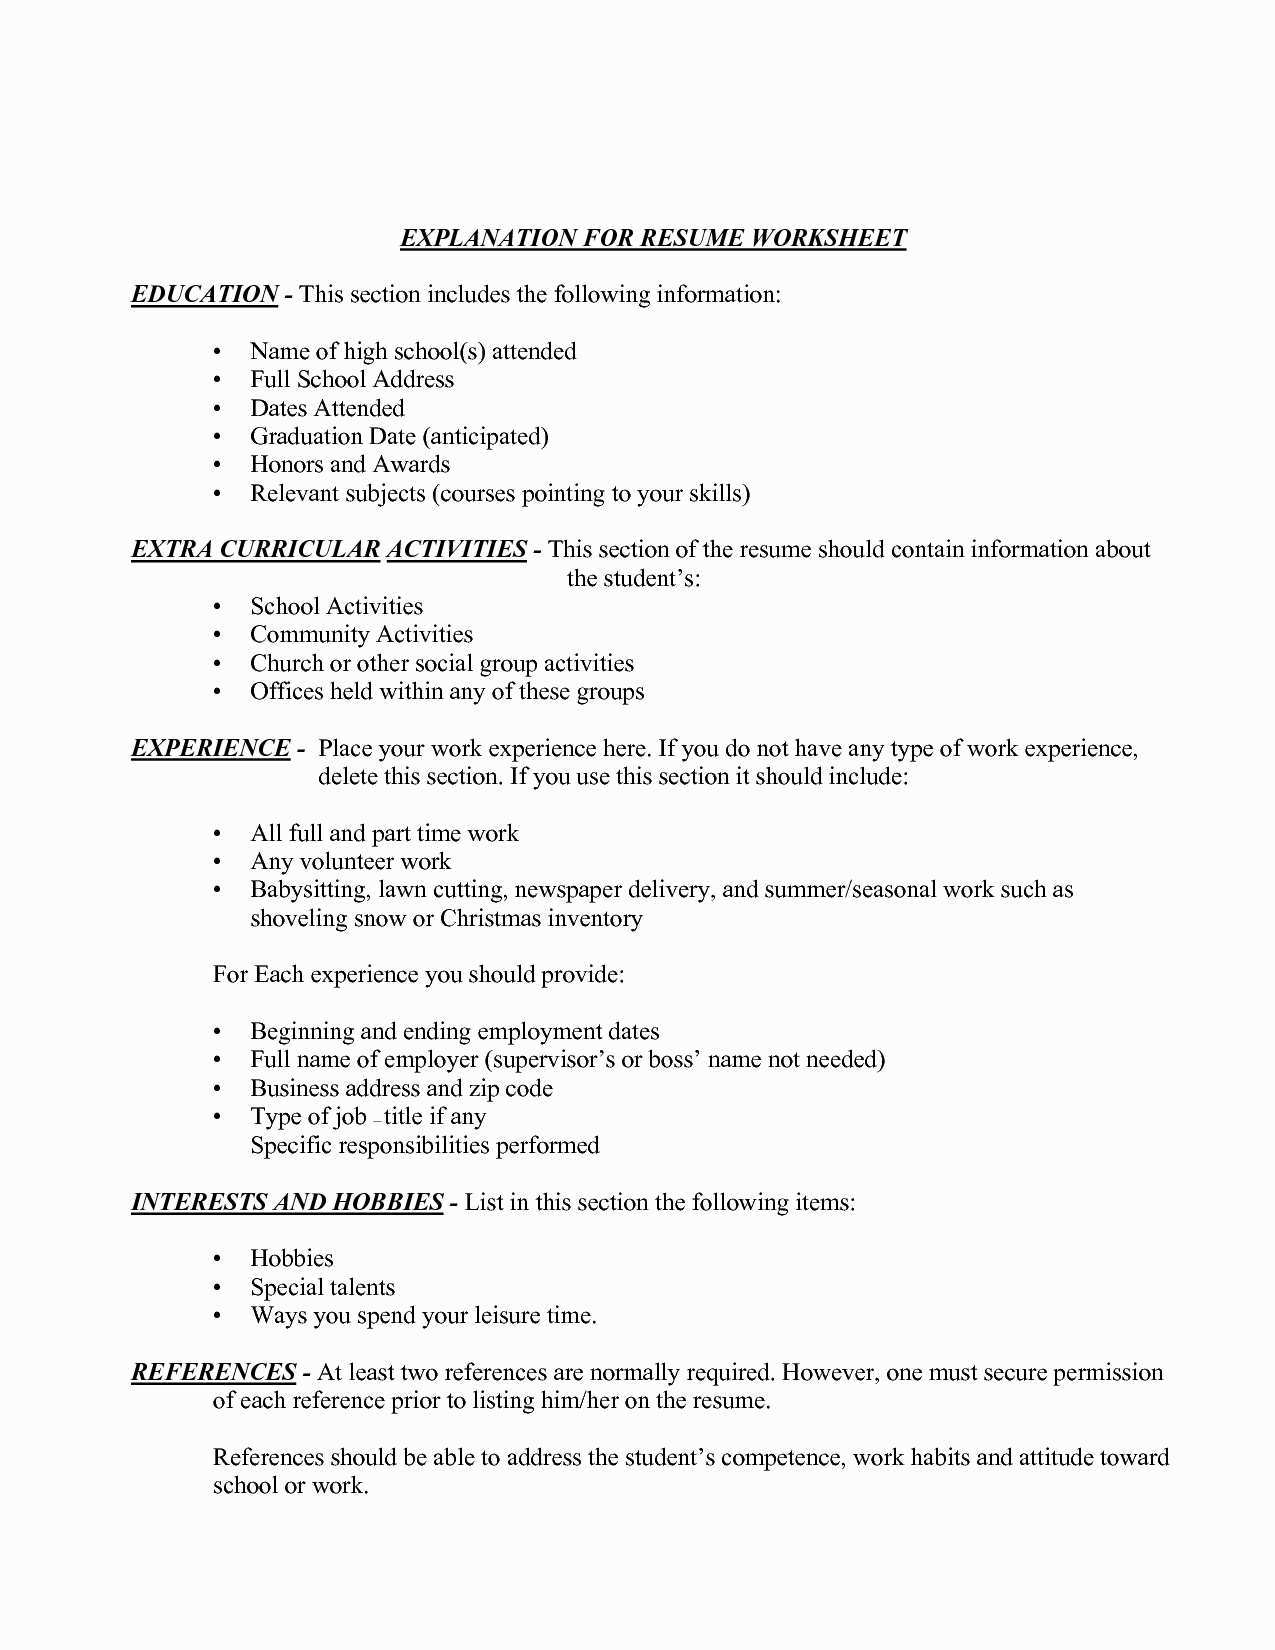 Focus Resume - Beaufiful Career Focus Resume Career Focus Resume Awesome